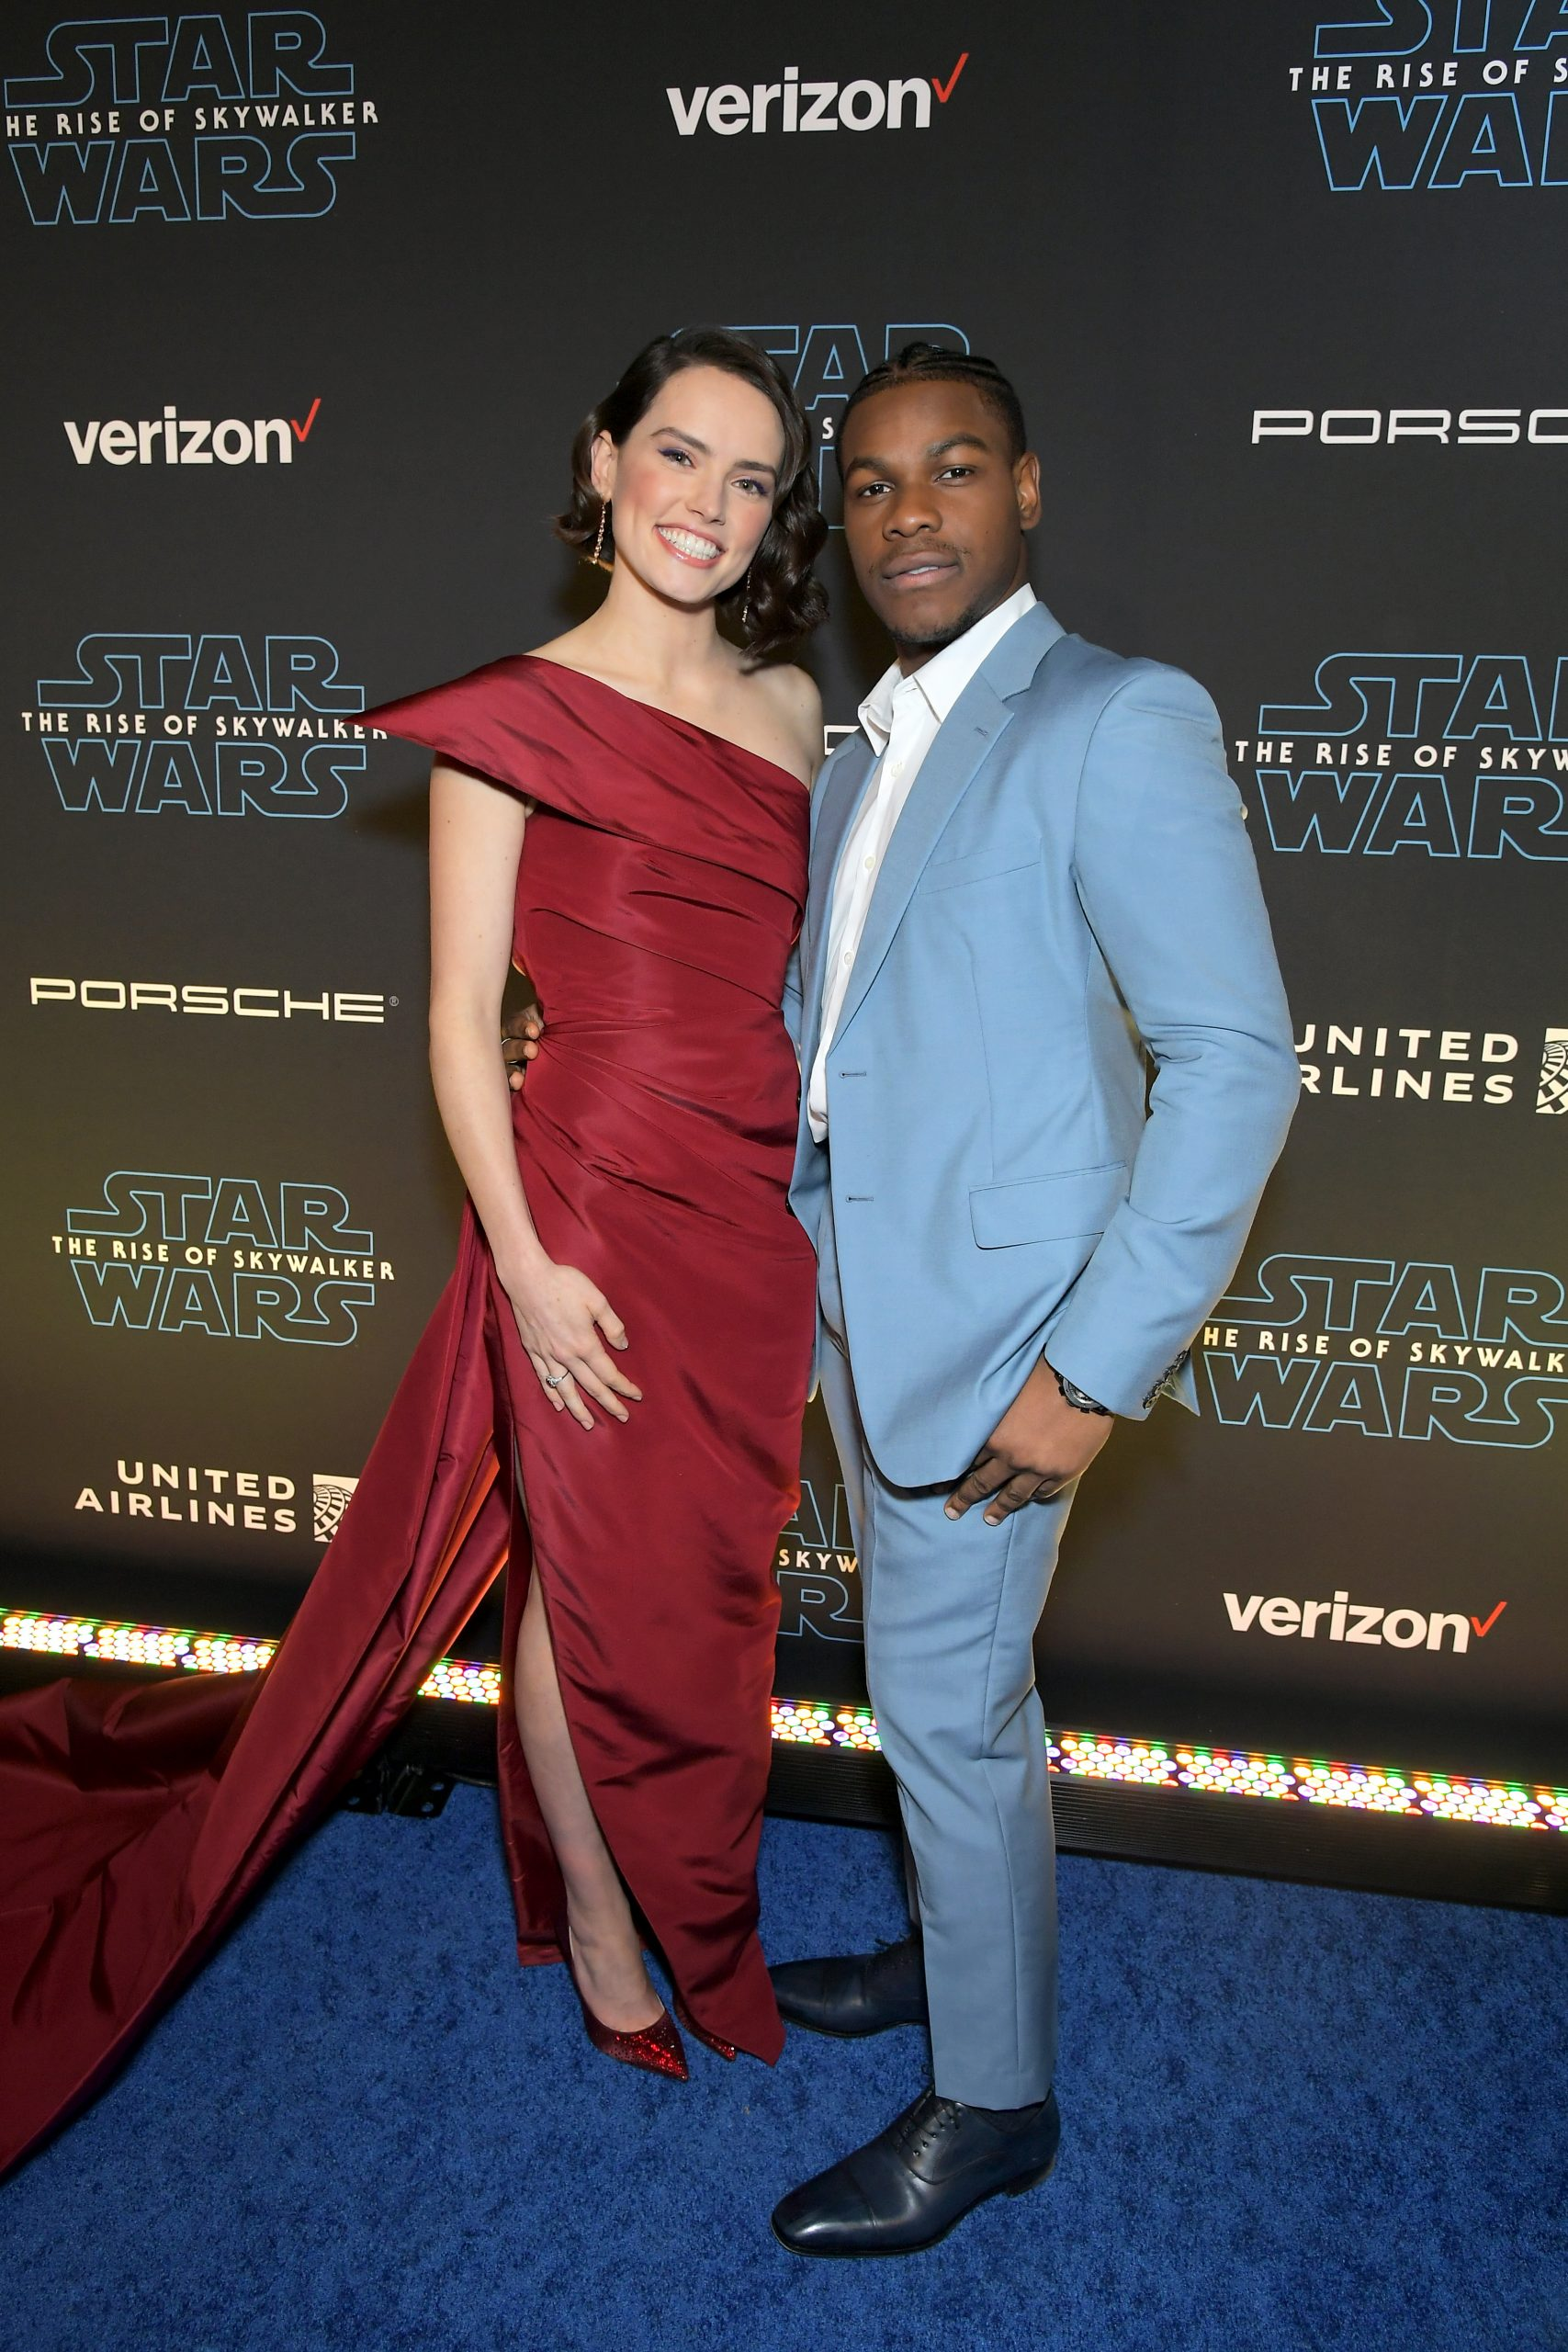 STAR WARS: THE RISE OF SKYWALKER WORLD PREMIERE